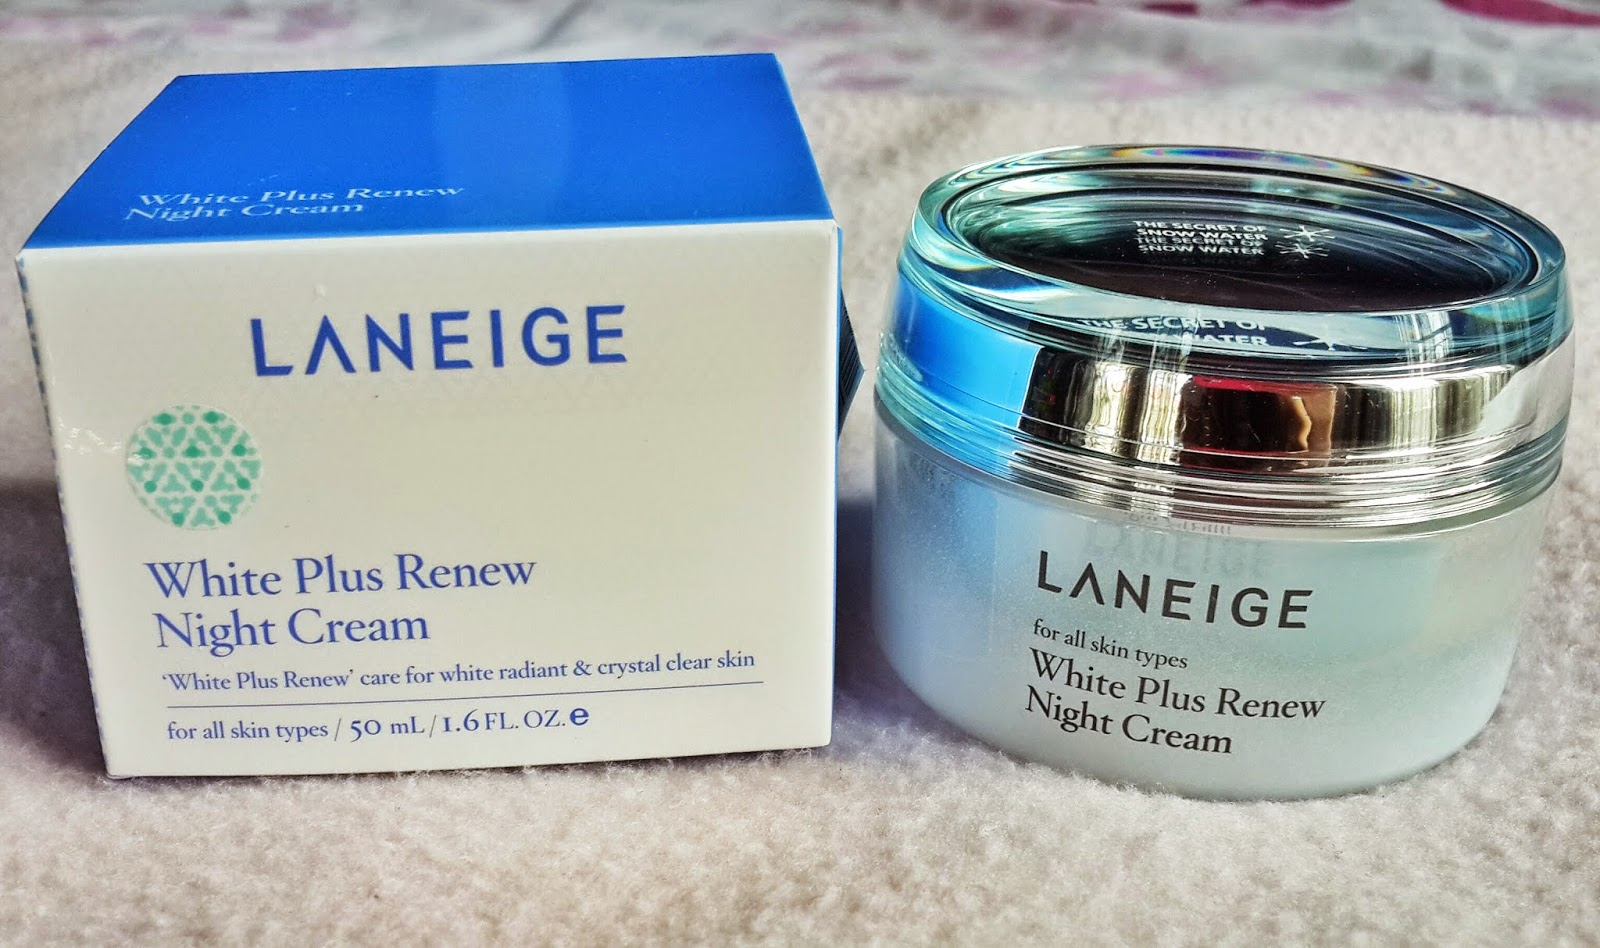 White Plus Renew Eye Cream by Laneige #8